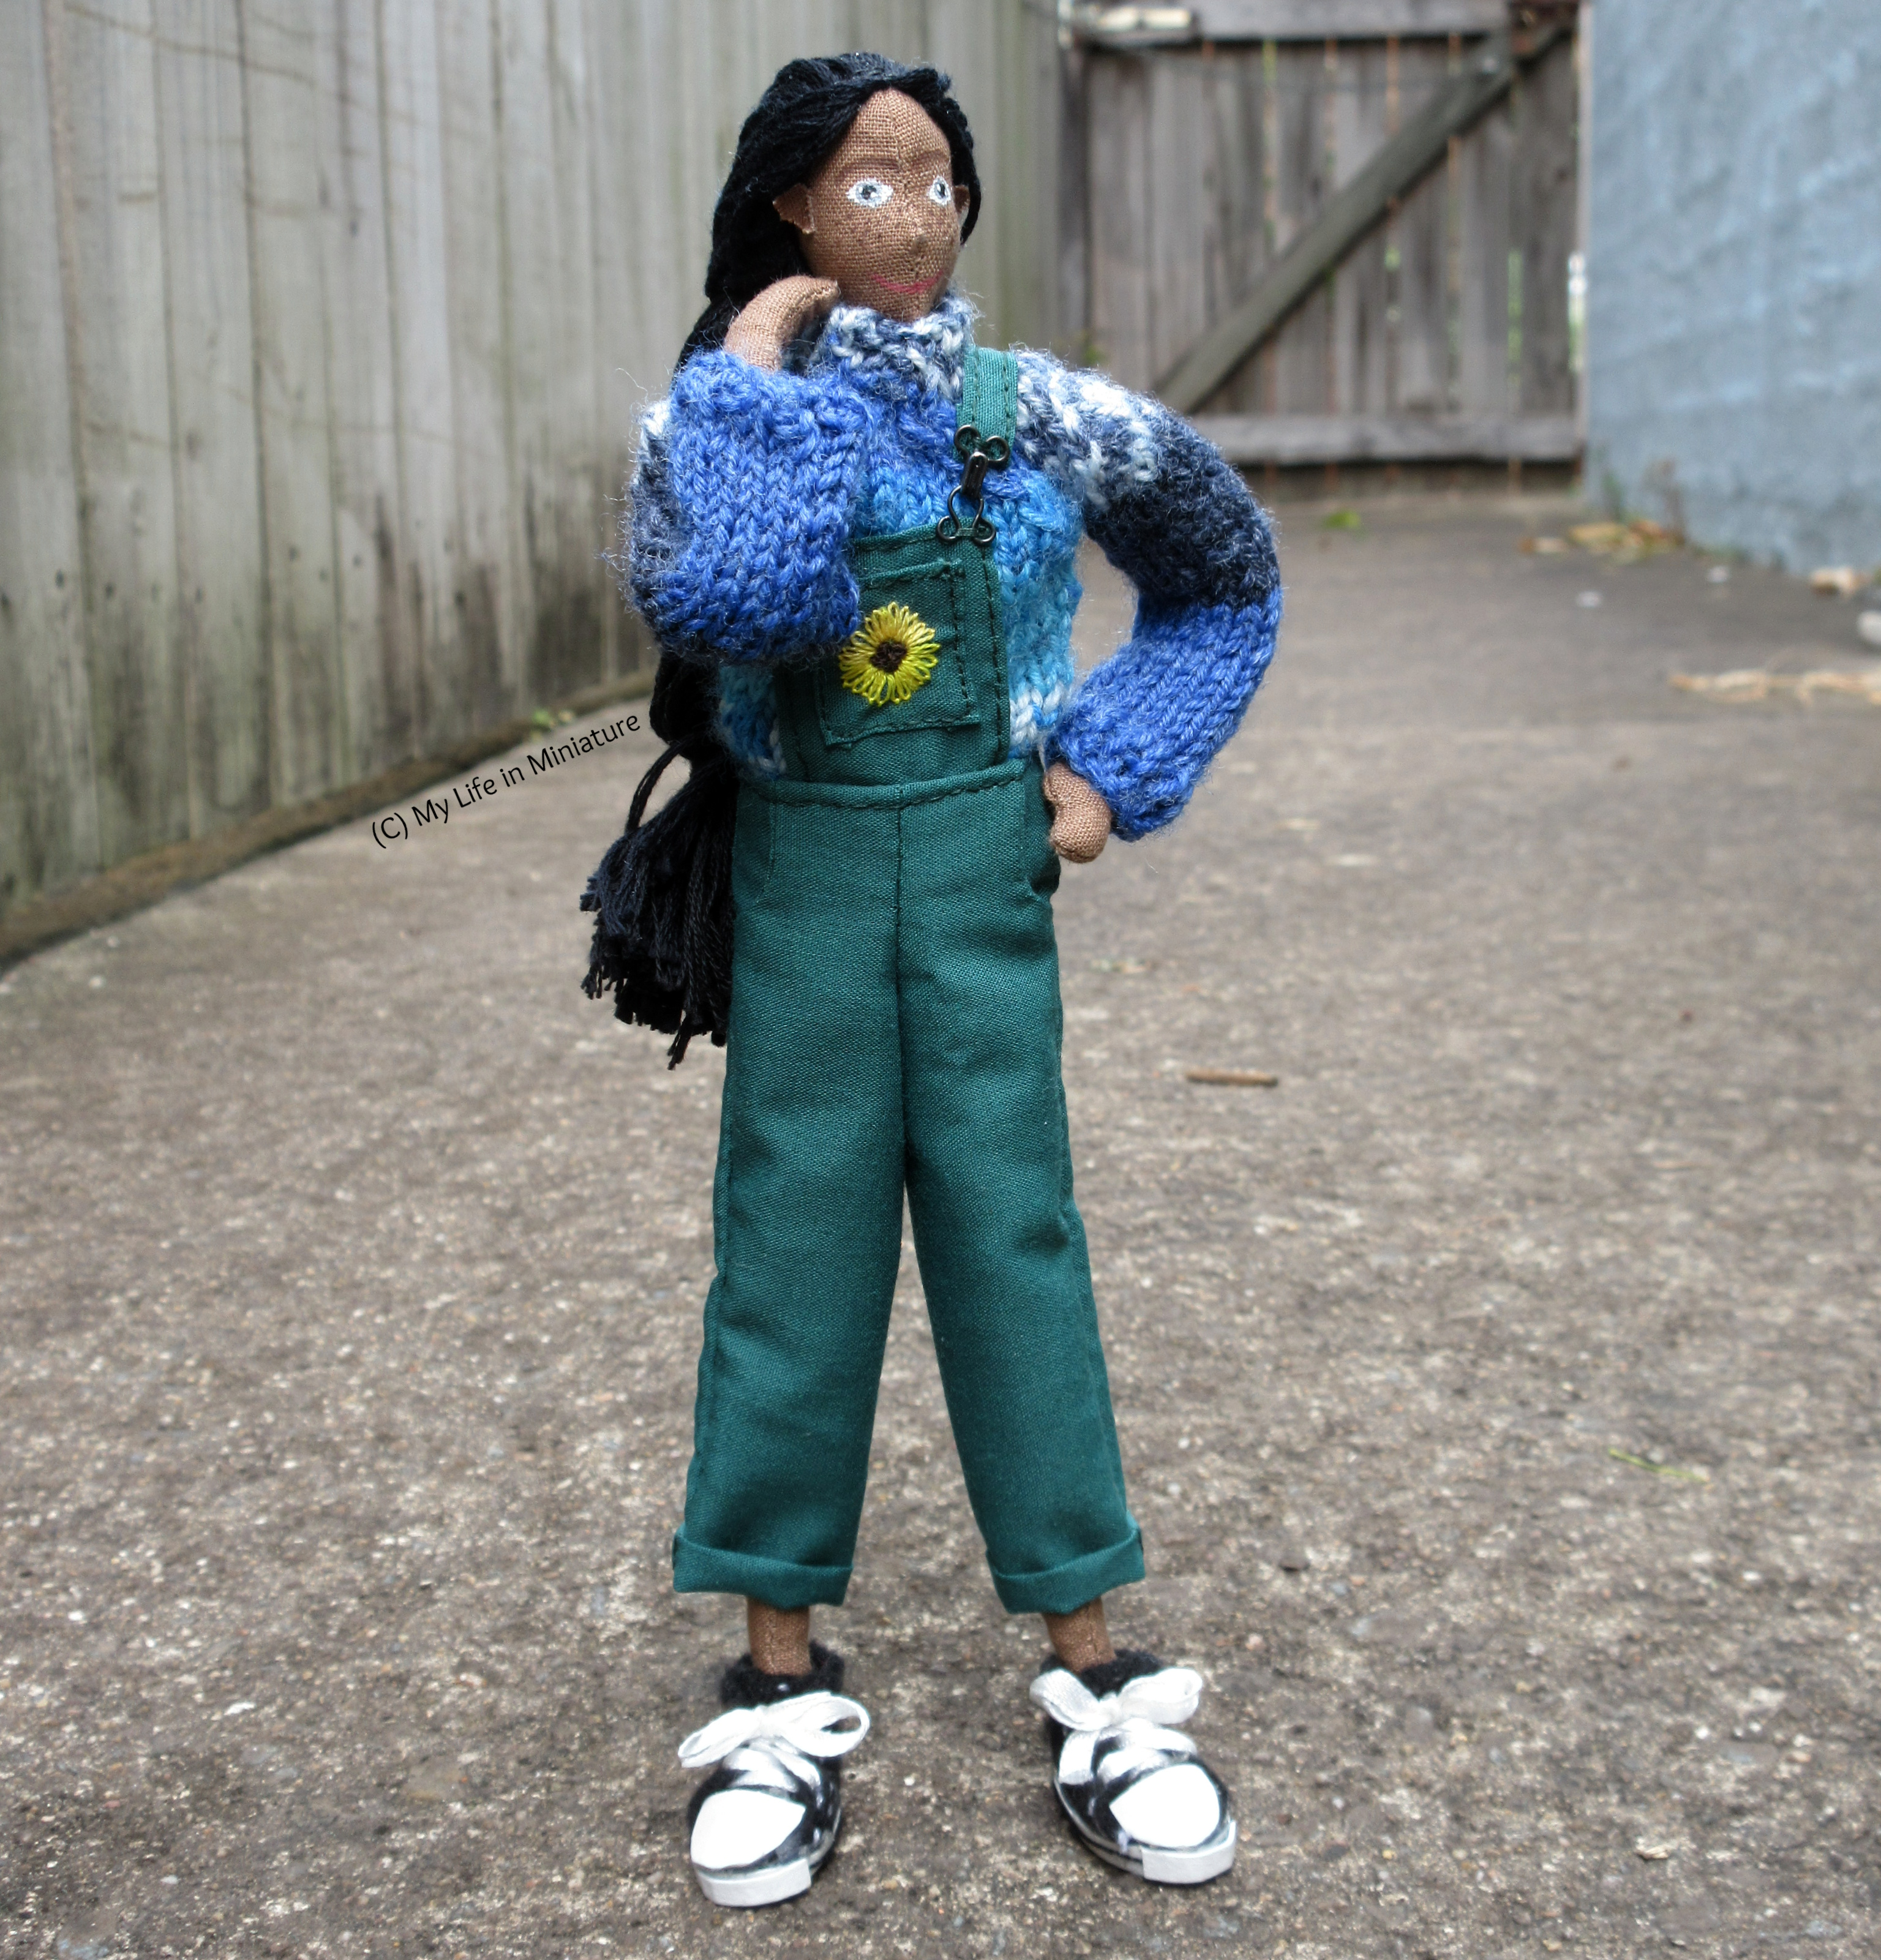 Petra stands with legs apart, one hand on her hip and one on her shoulder. She looks to the right; wearing her long green dungarees with her blue jumper and black shoes. Behind her is a wooden fence and wooden gate.